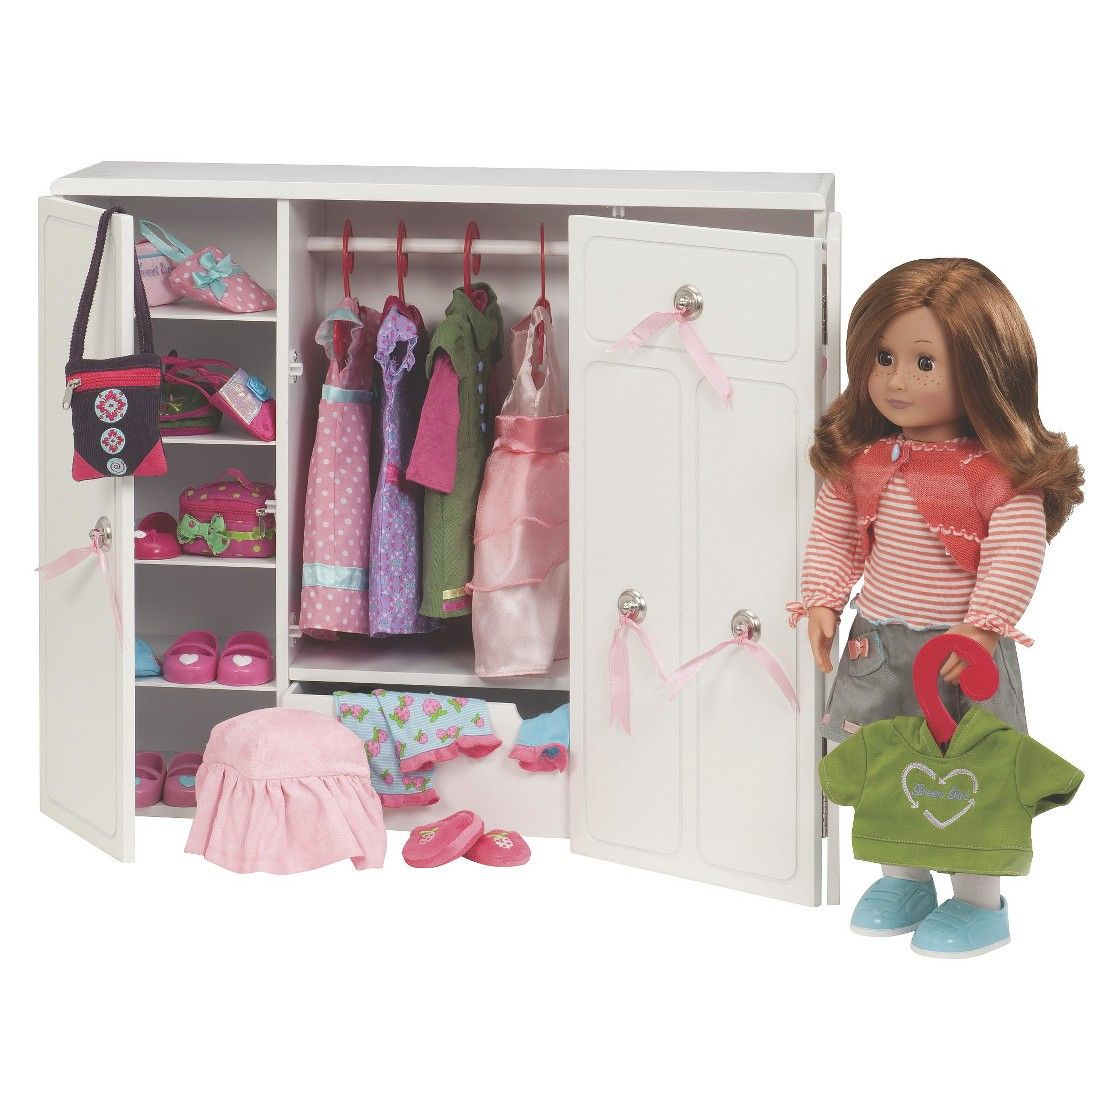 Our Generation Wooden Wardrobe America Girl Doll Houses